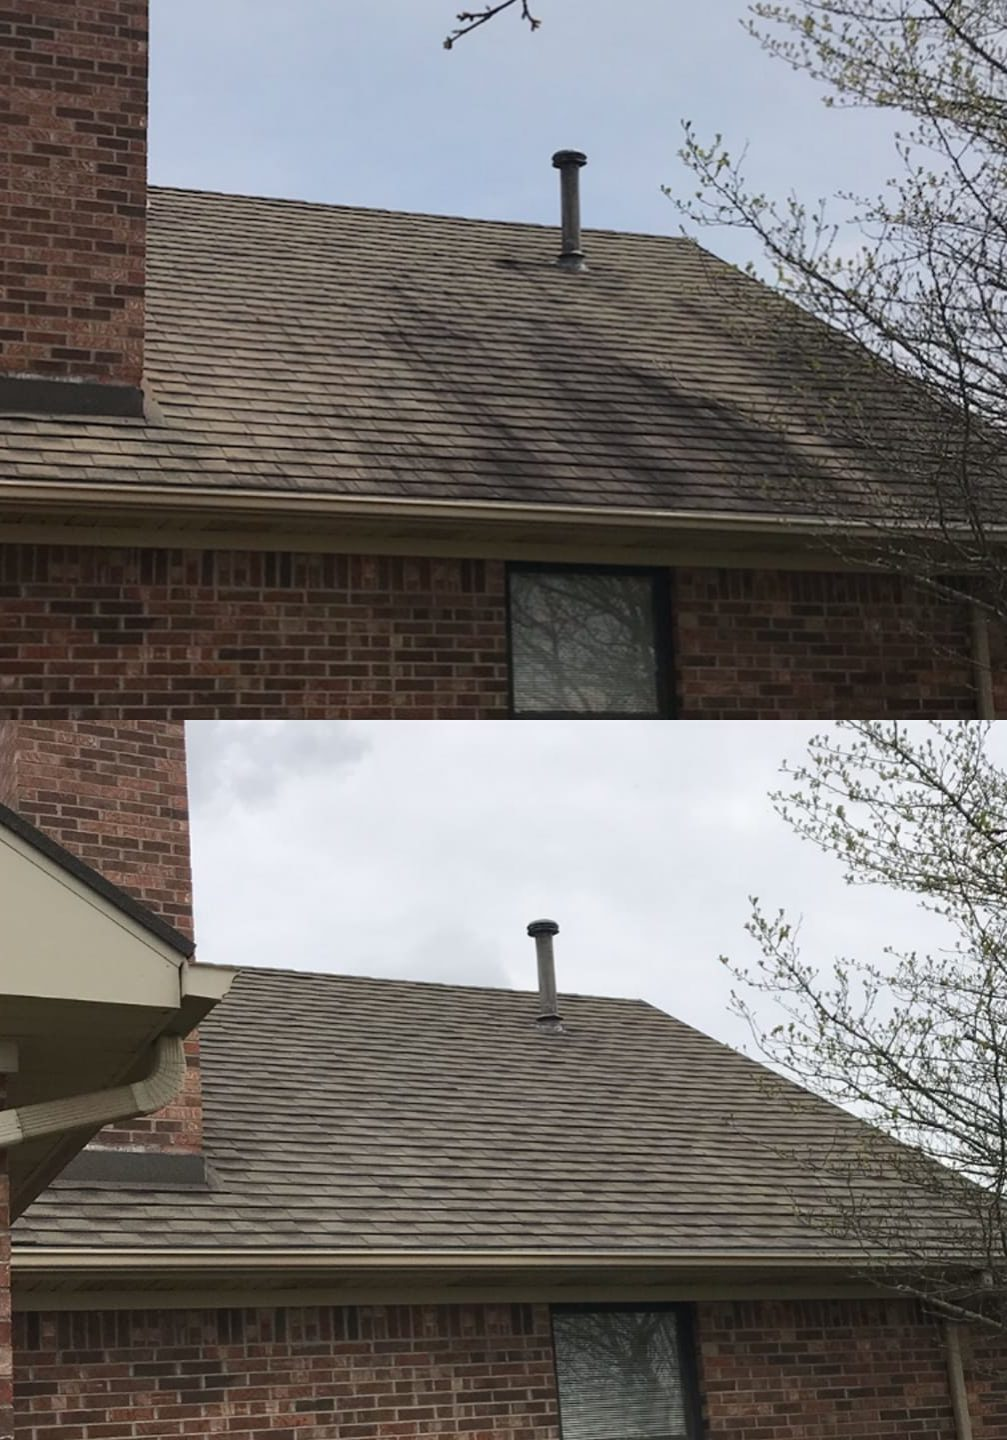 Your roof is one of the most important parts of your home. So why not trust a team who can make it last as long as possible… And look beautiful at the same time? Grime Stoppers is proud to meet both goals for all of our customers with our roof cleaning solutions.Your roof is one of the most important parts of your home. So why not trust a team who can make it last as long as possible… And look beautiful at the same time? Grime Stoppers is proud to meet both goals for all of our customers with our roof cleaning solutions.